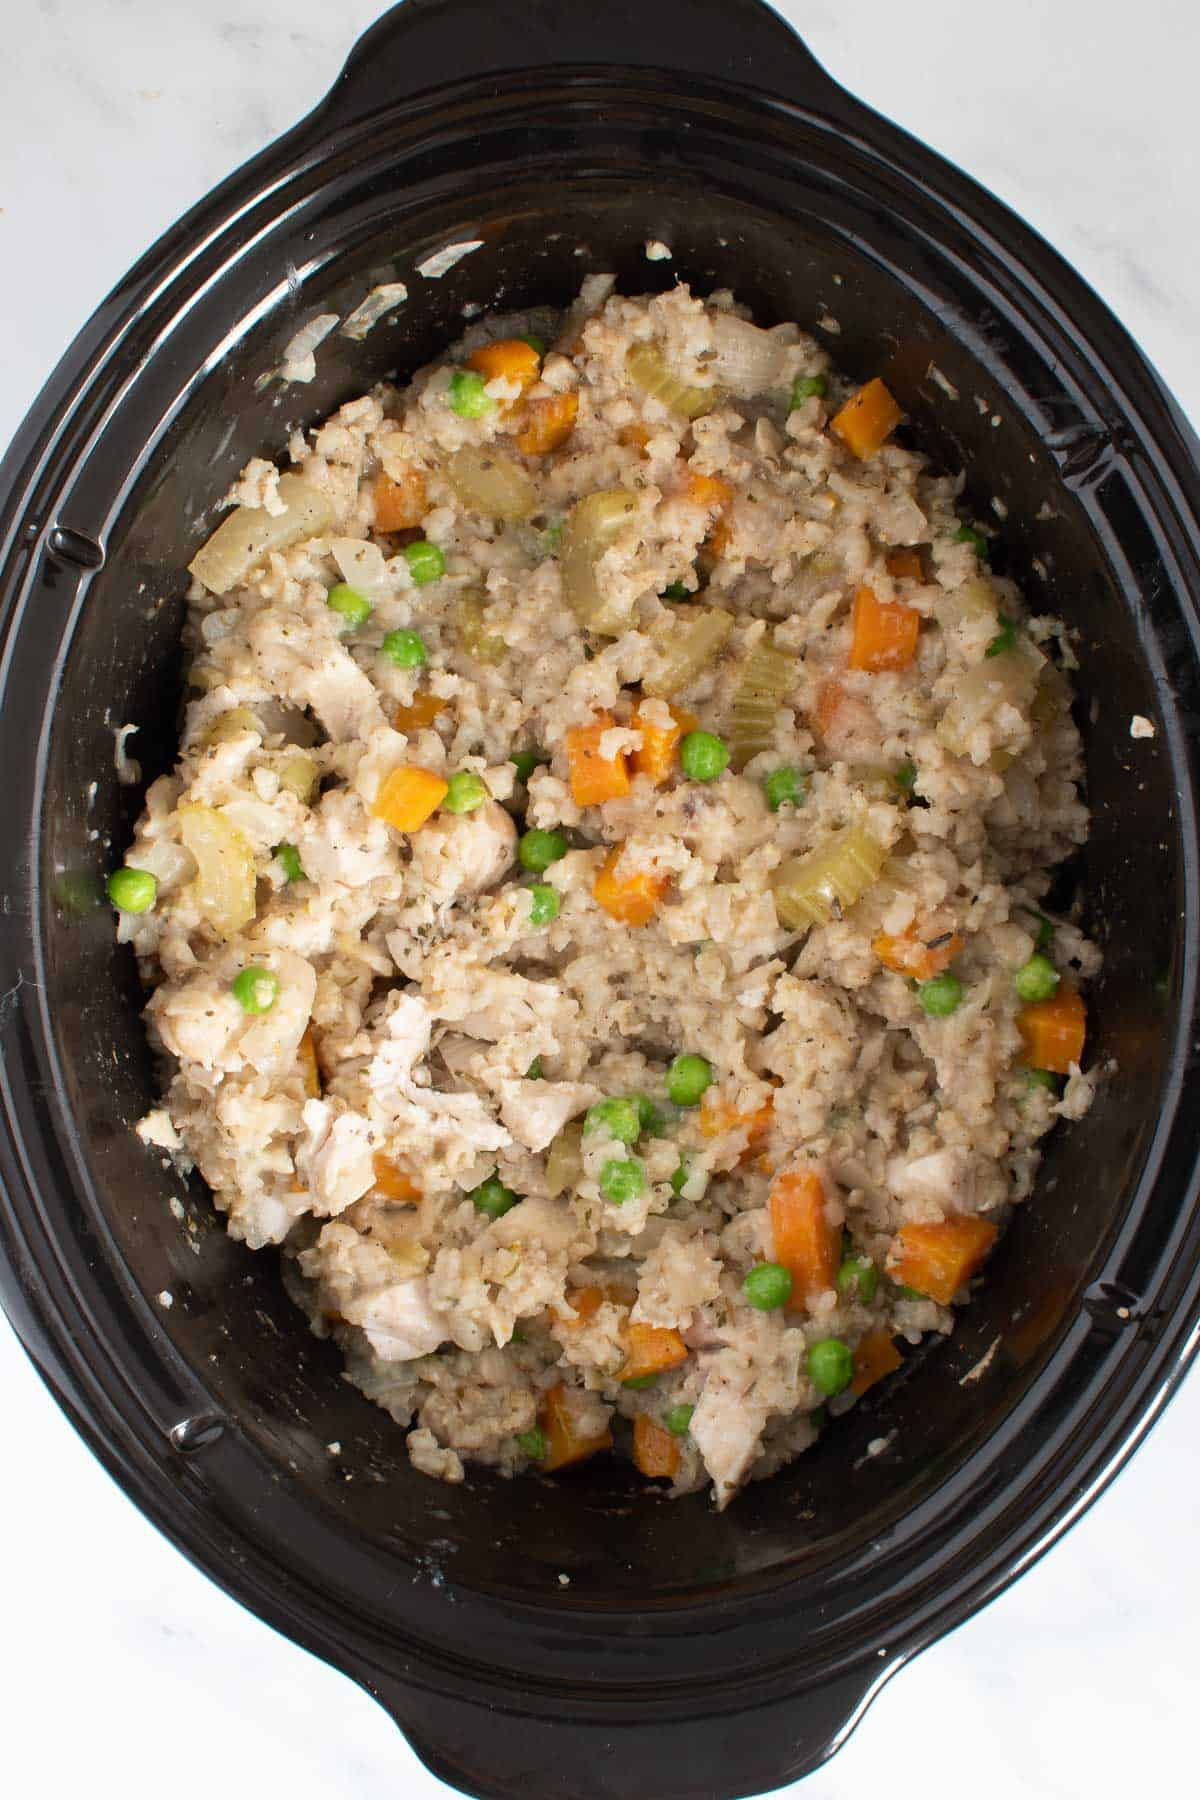 Chicken, rice and vegetables in a crockpot.